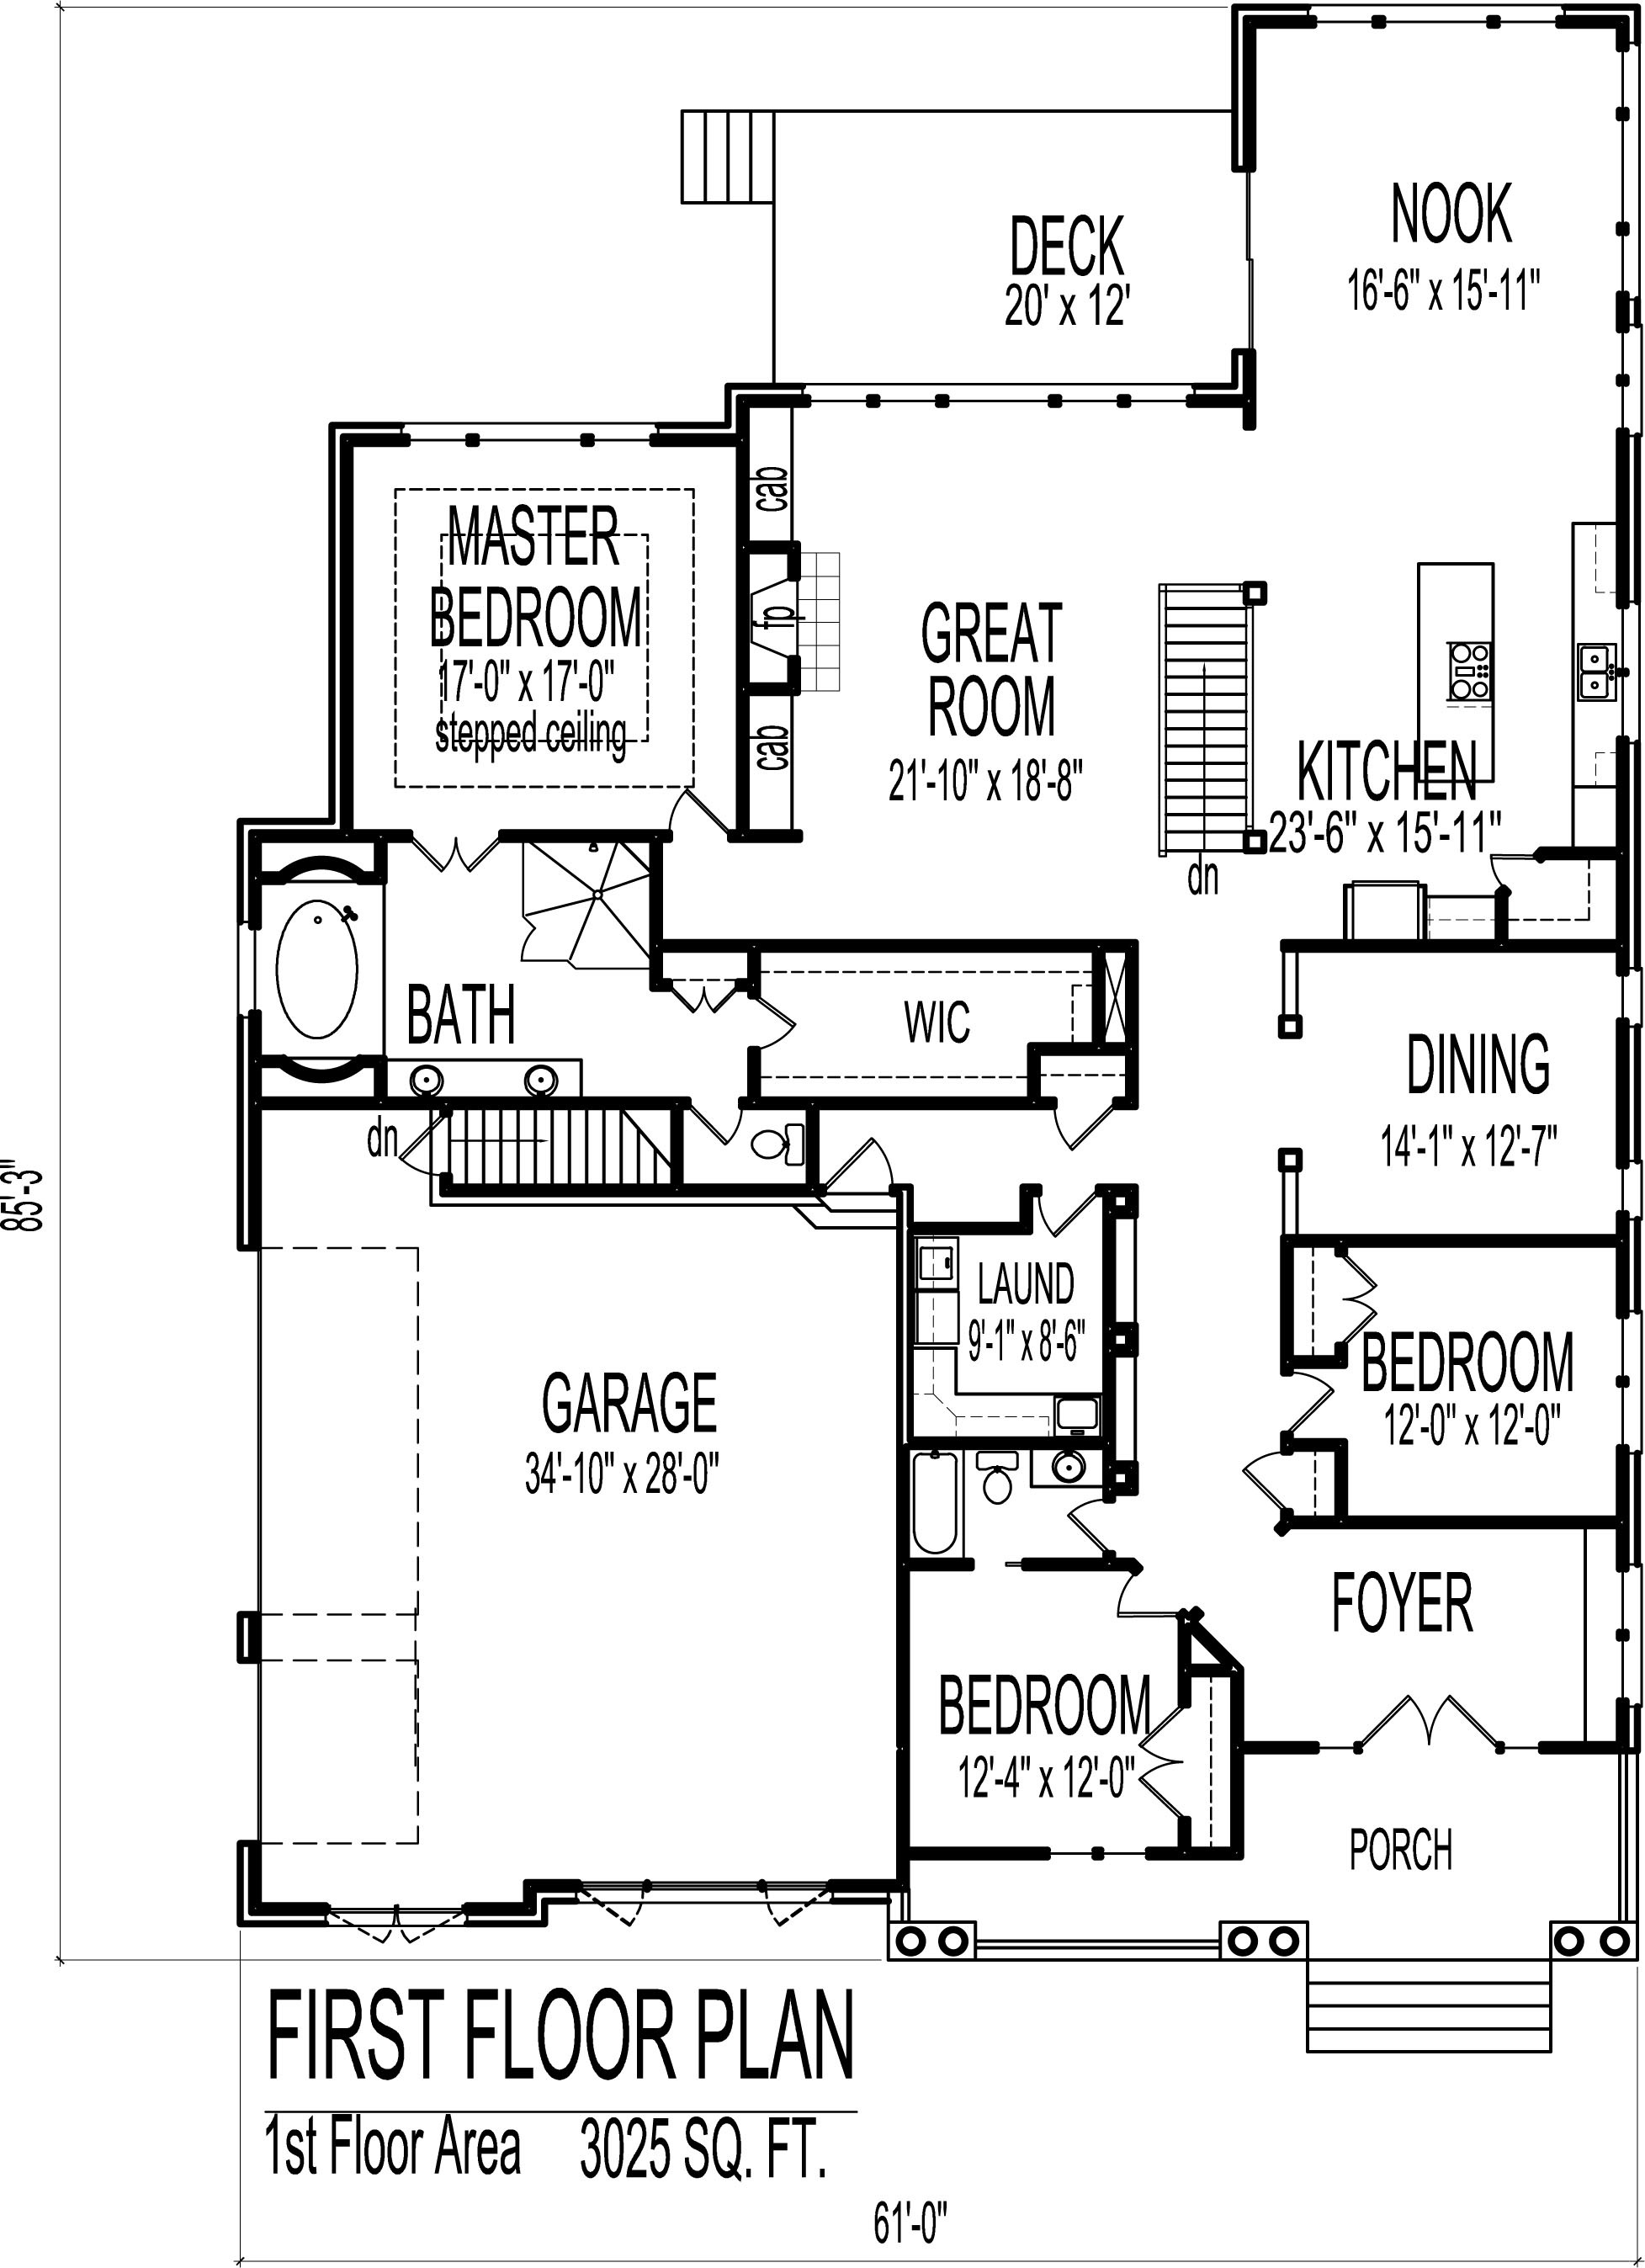 House Plan Drawing software Free Download Lovely House Site Plan Drawing at Getdrawings